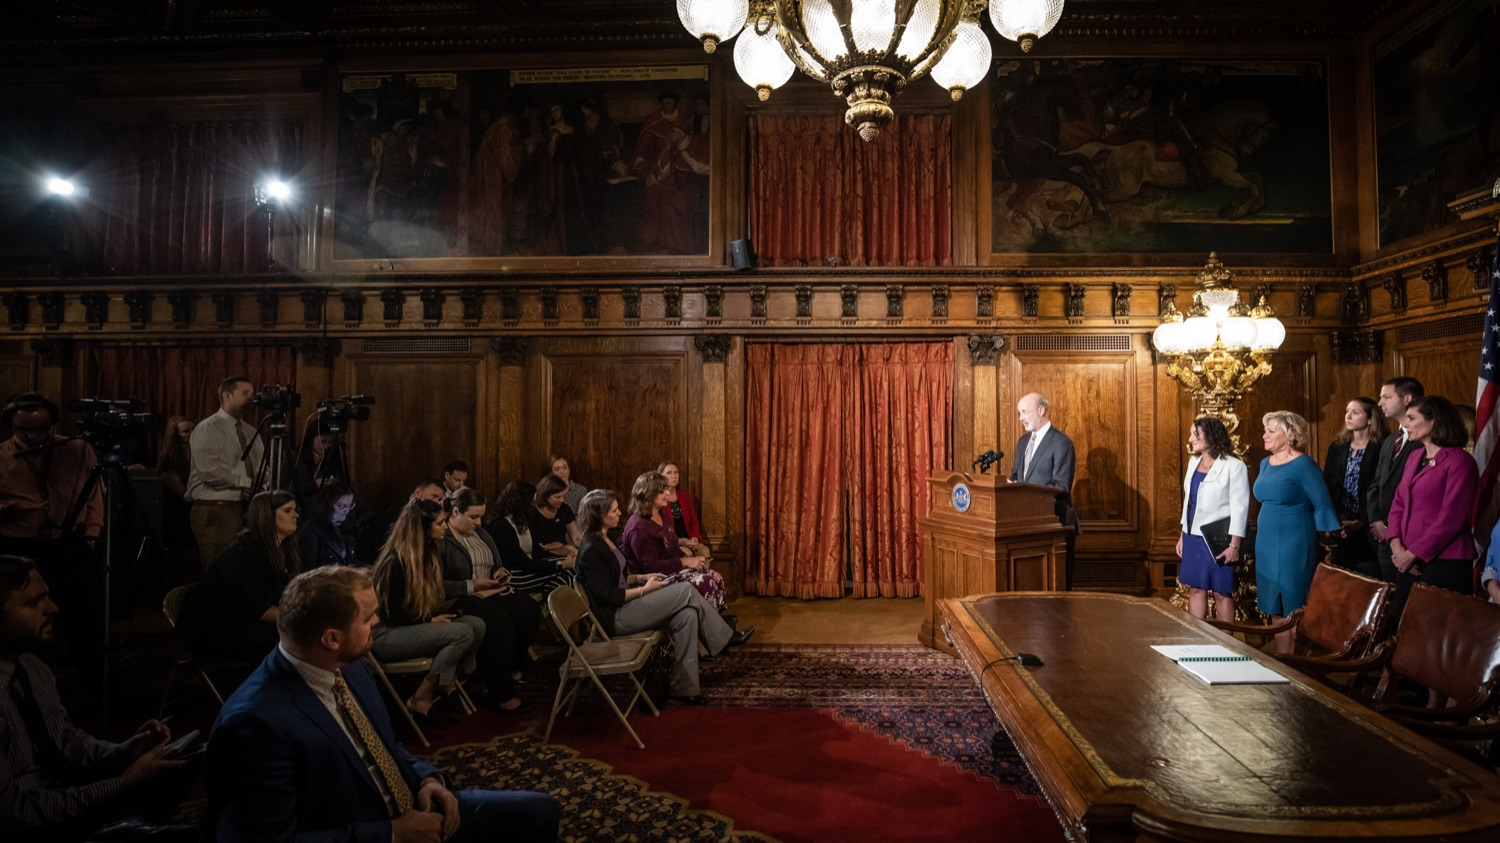 "<a href=""http://filesource.abacast.com/commonwealthofpa/photo/17554_gov_voter_reform_bill_dz_019.jpg"" target=""_blank"">⇣ Download Photo<br></a>Harrisburg, PA  Governor Tom Wolf speaks at the Election Reform Bill signing.  Governor Wolf made voting more convenient and secure by signing Act 77 of 2019, the most significant improvement to Pennsylvanias elections in more than 80 years. The bipartisan compromise legislation takes effect for the April 2020 primary election and makes Pennsylvania a national leader with voter-friendly election reforms."